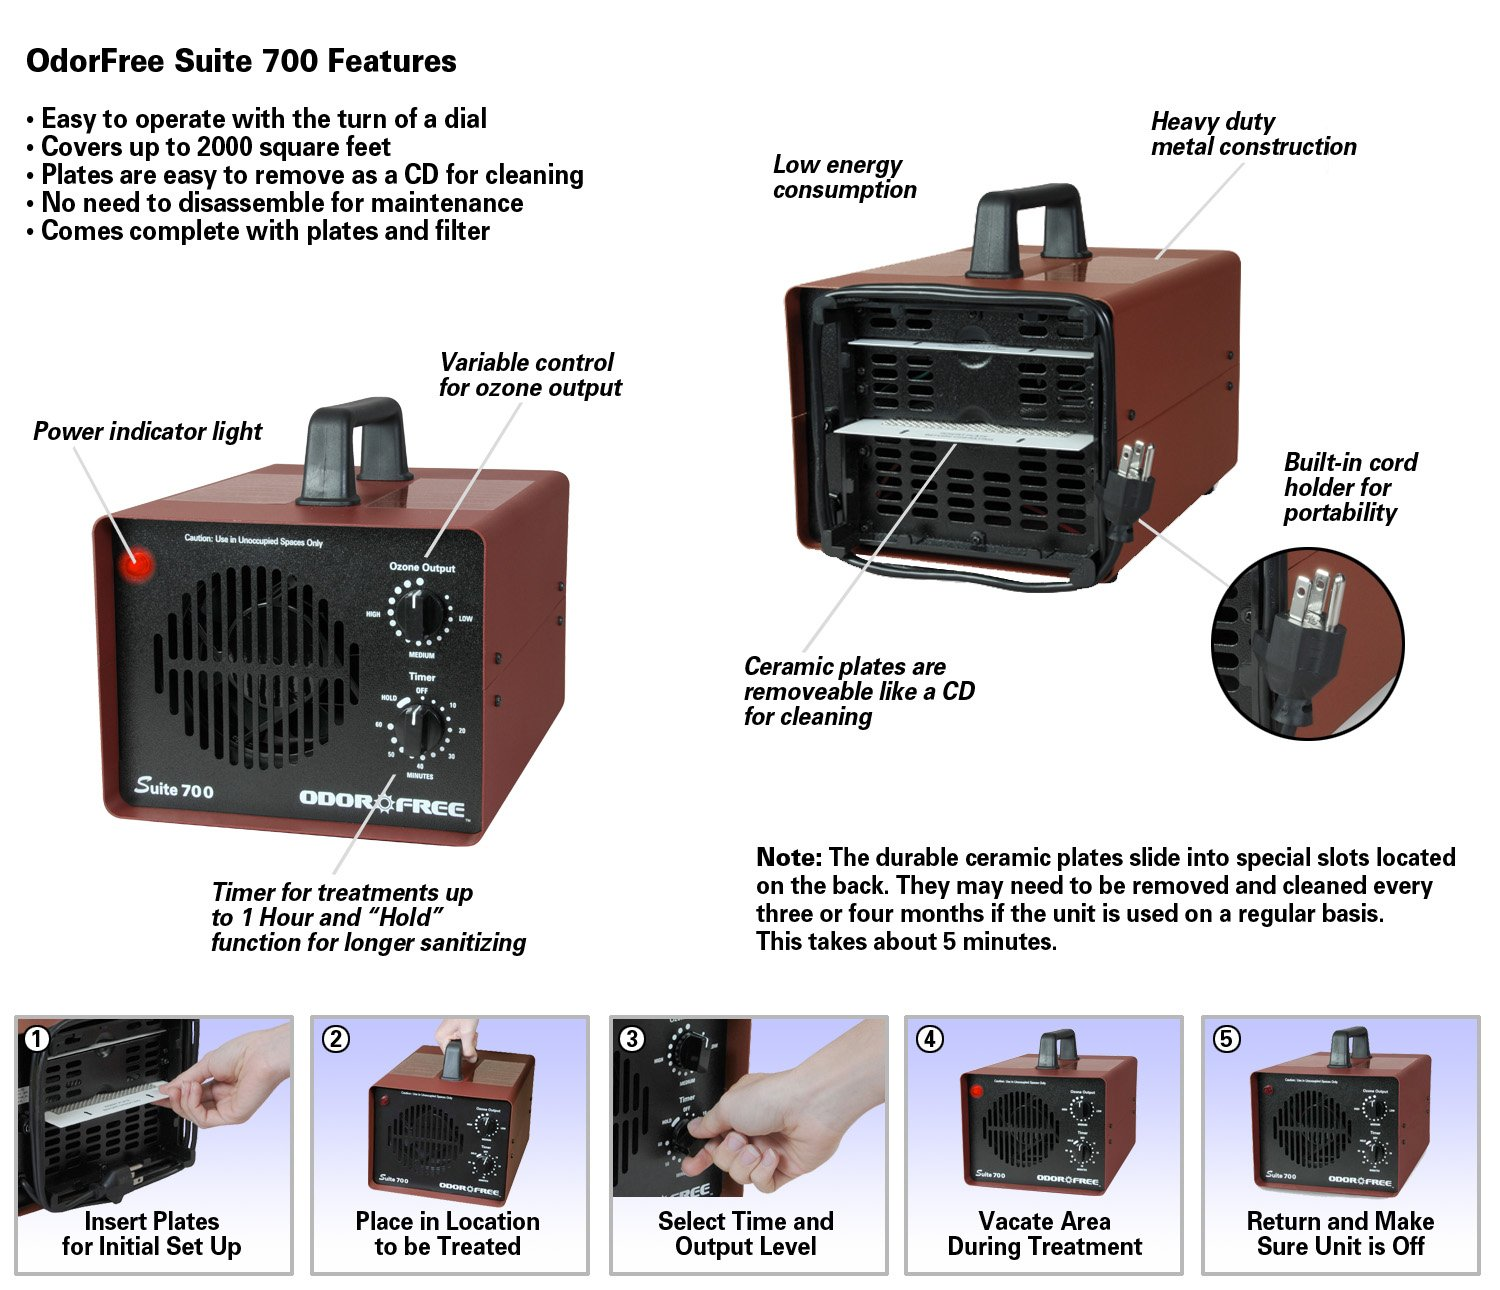 OdorFree Suite 700 Ozone Generator for eliminating Odors from small